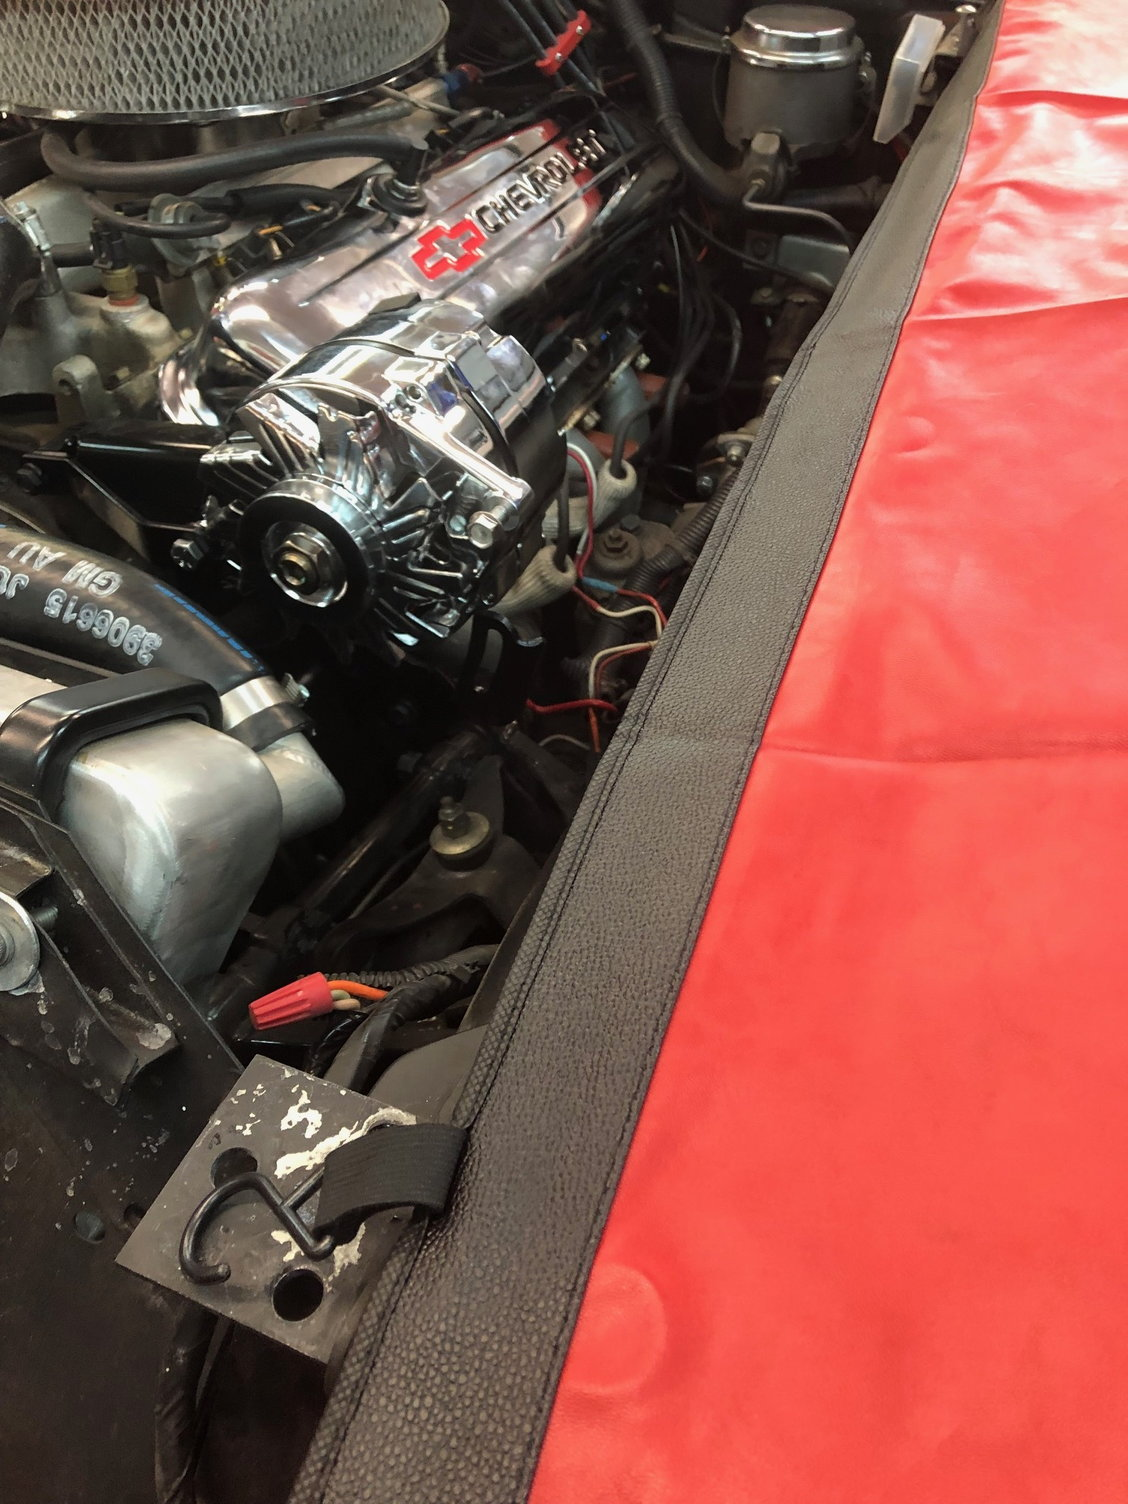 C2 Uncle   Please Help With Power Steering Conversion - Page 2 - Corvetteforum